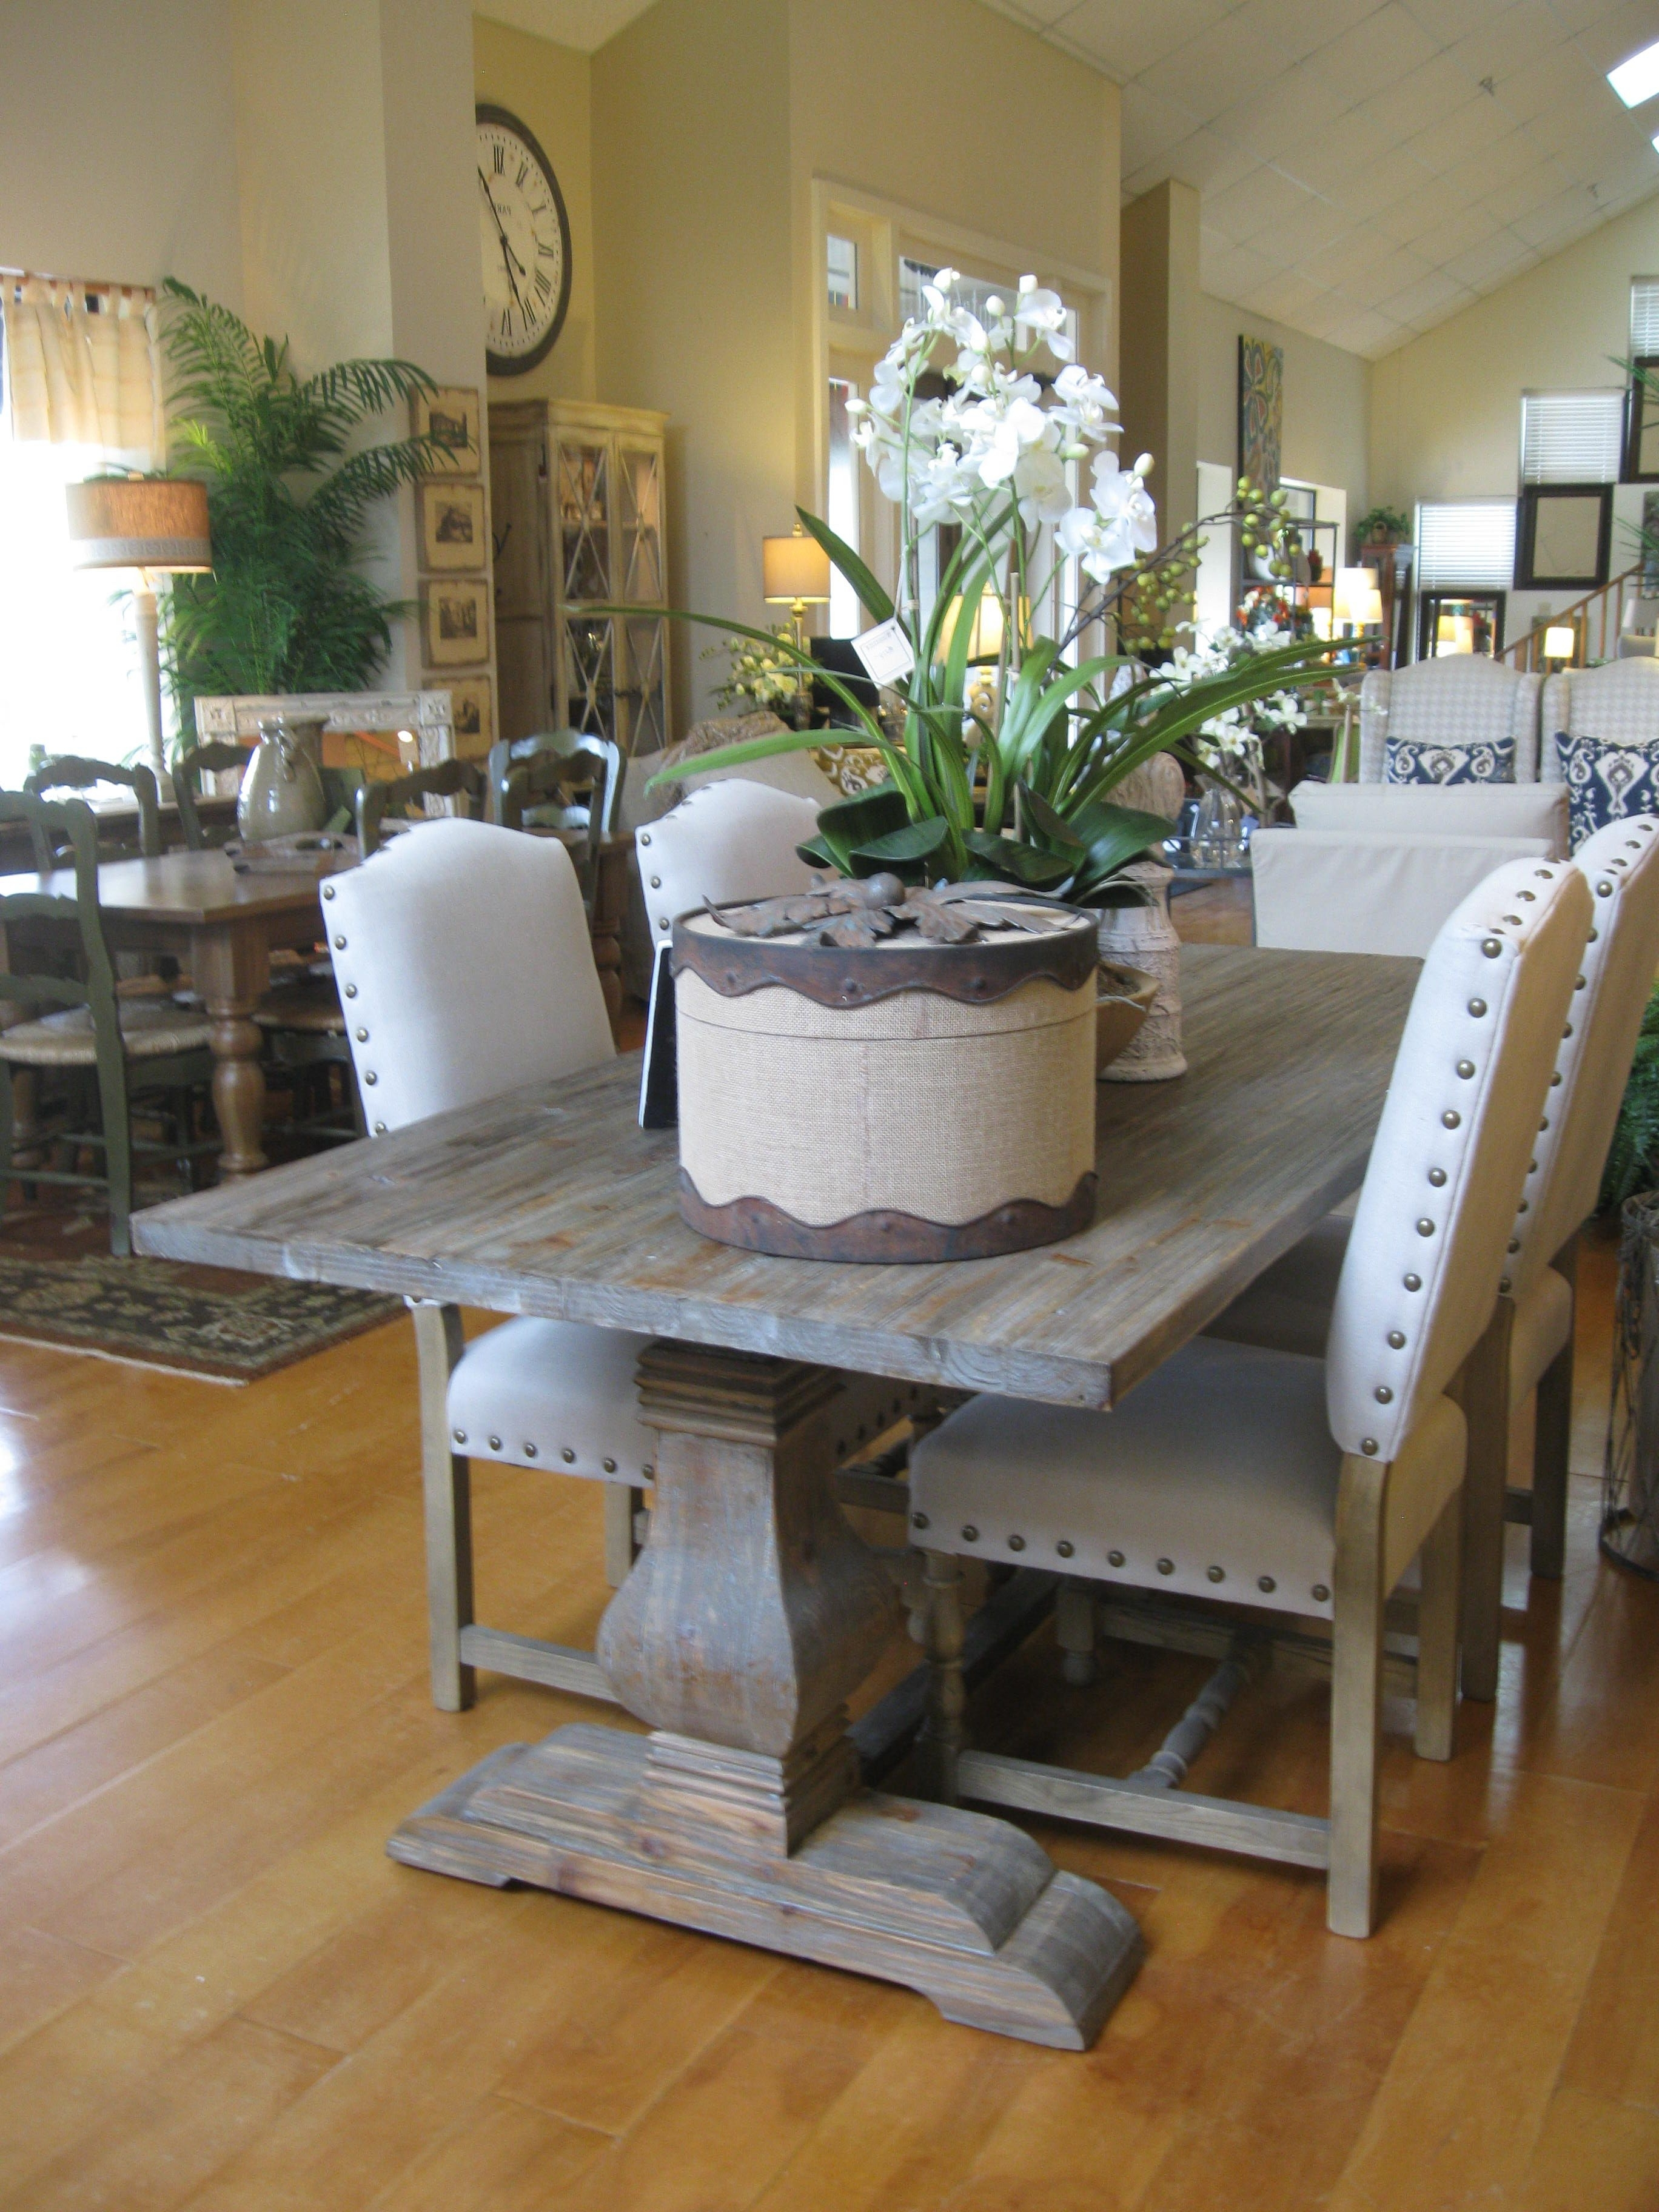 "The"" Trestle Table – I Do Absolutely Love This Tressle Table, But I Pertaining To Preferred Natural Wood & Recycled Elm 87 Inch Dining Tables (View 24 of 25)"